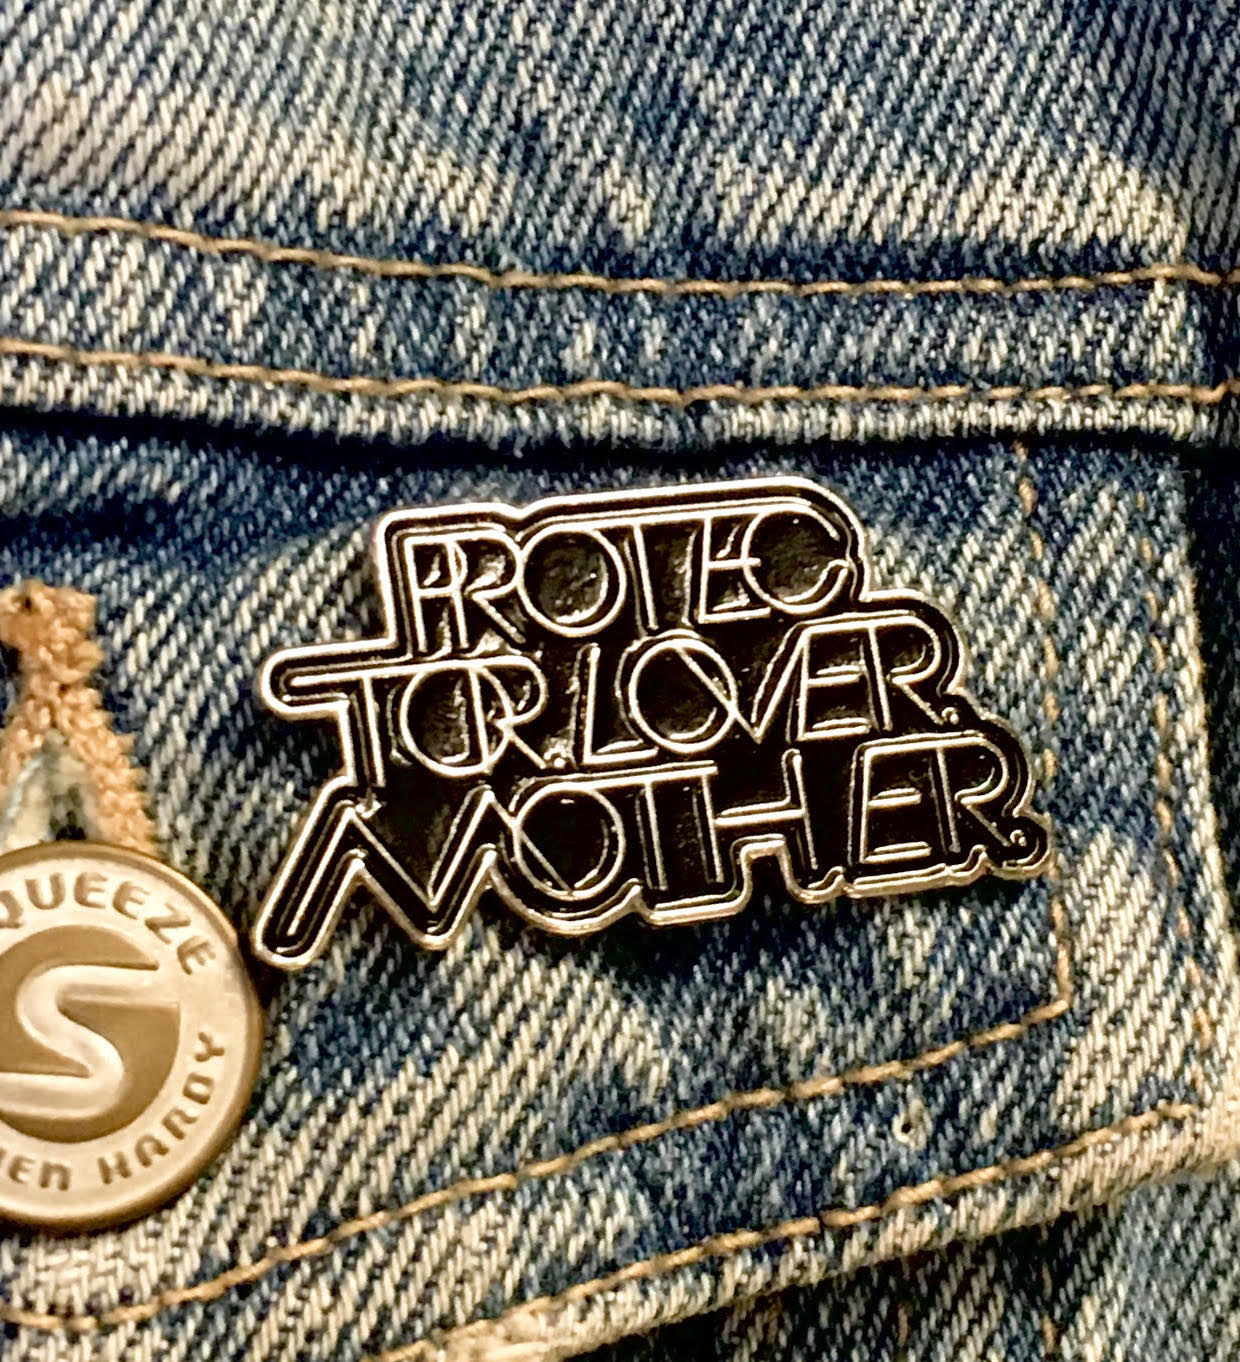 INTERLOCK PROTECTOR. LOVER. MOTHER.® SOFT ENAMEL PIN - SILVER & BLACK